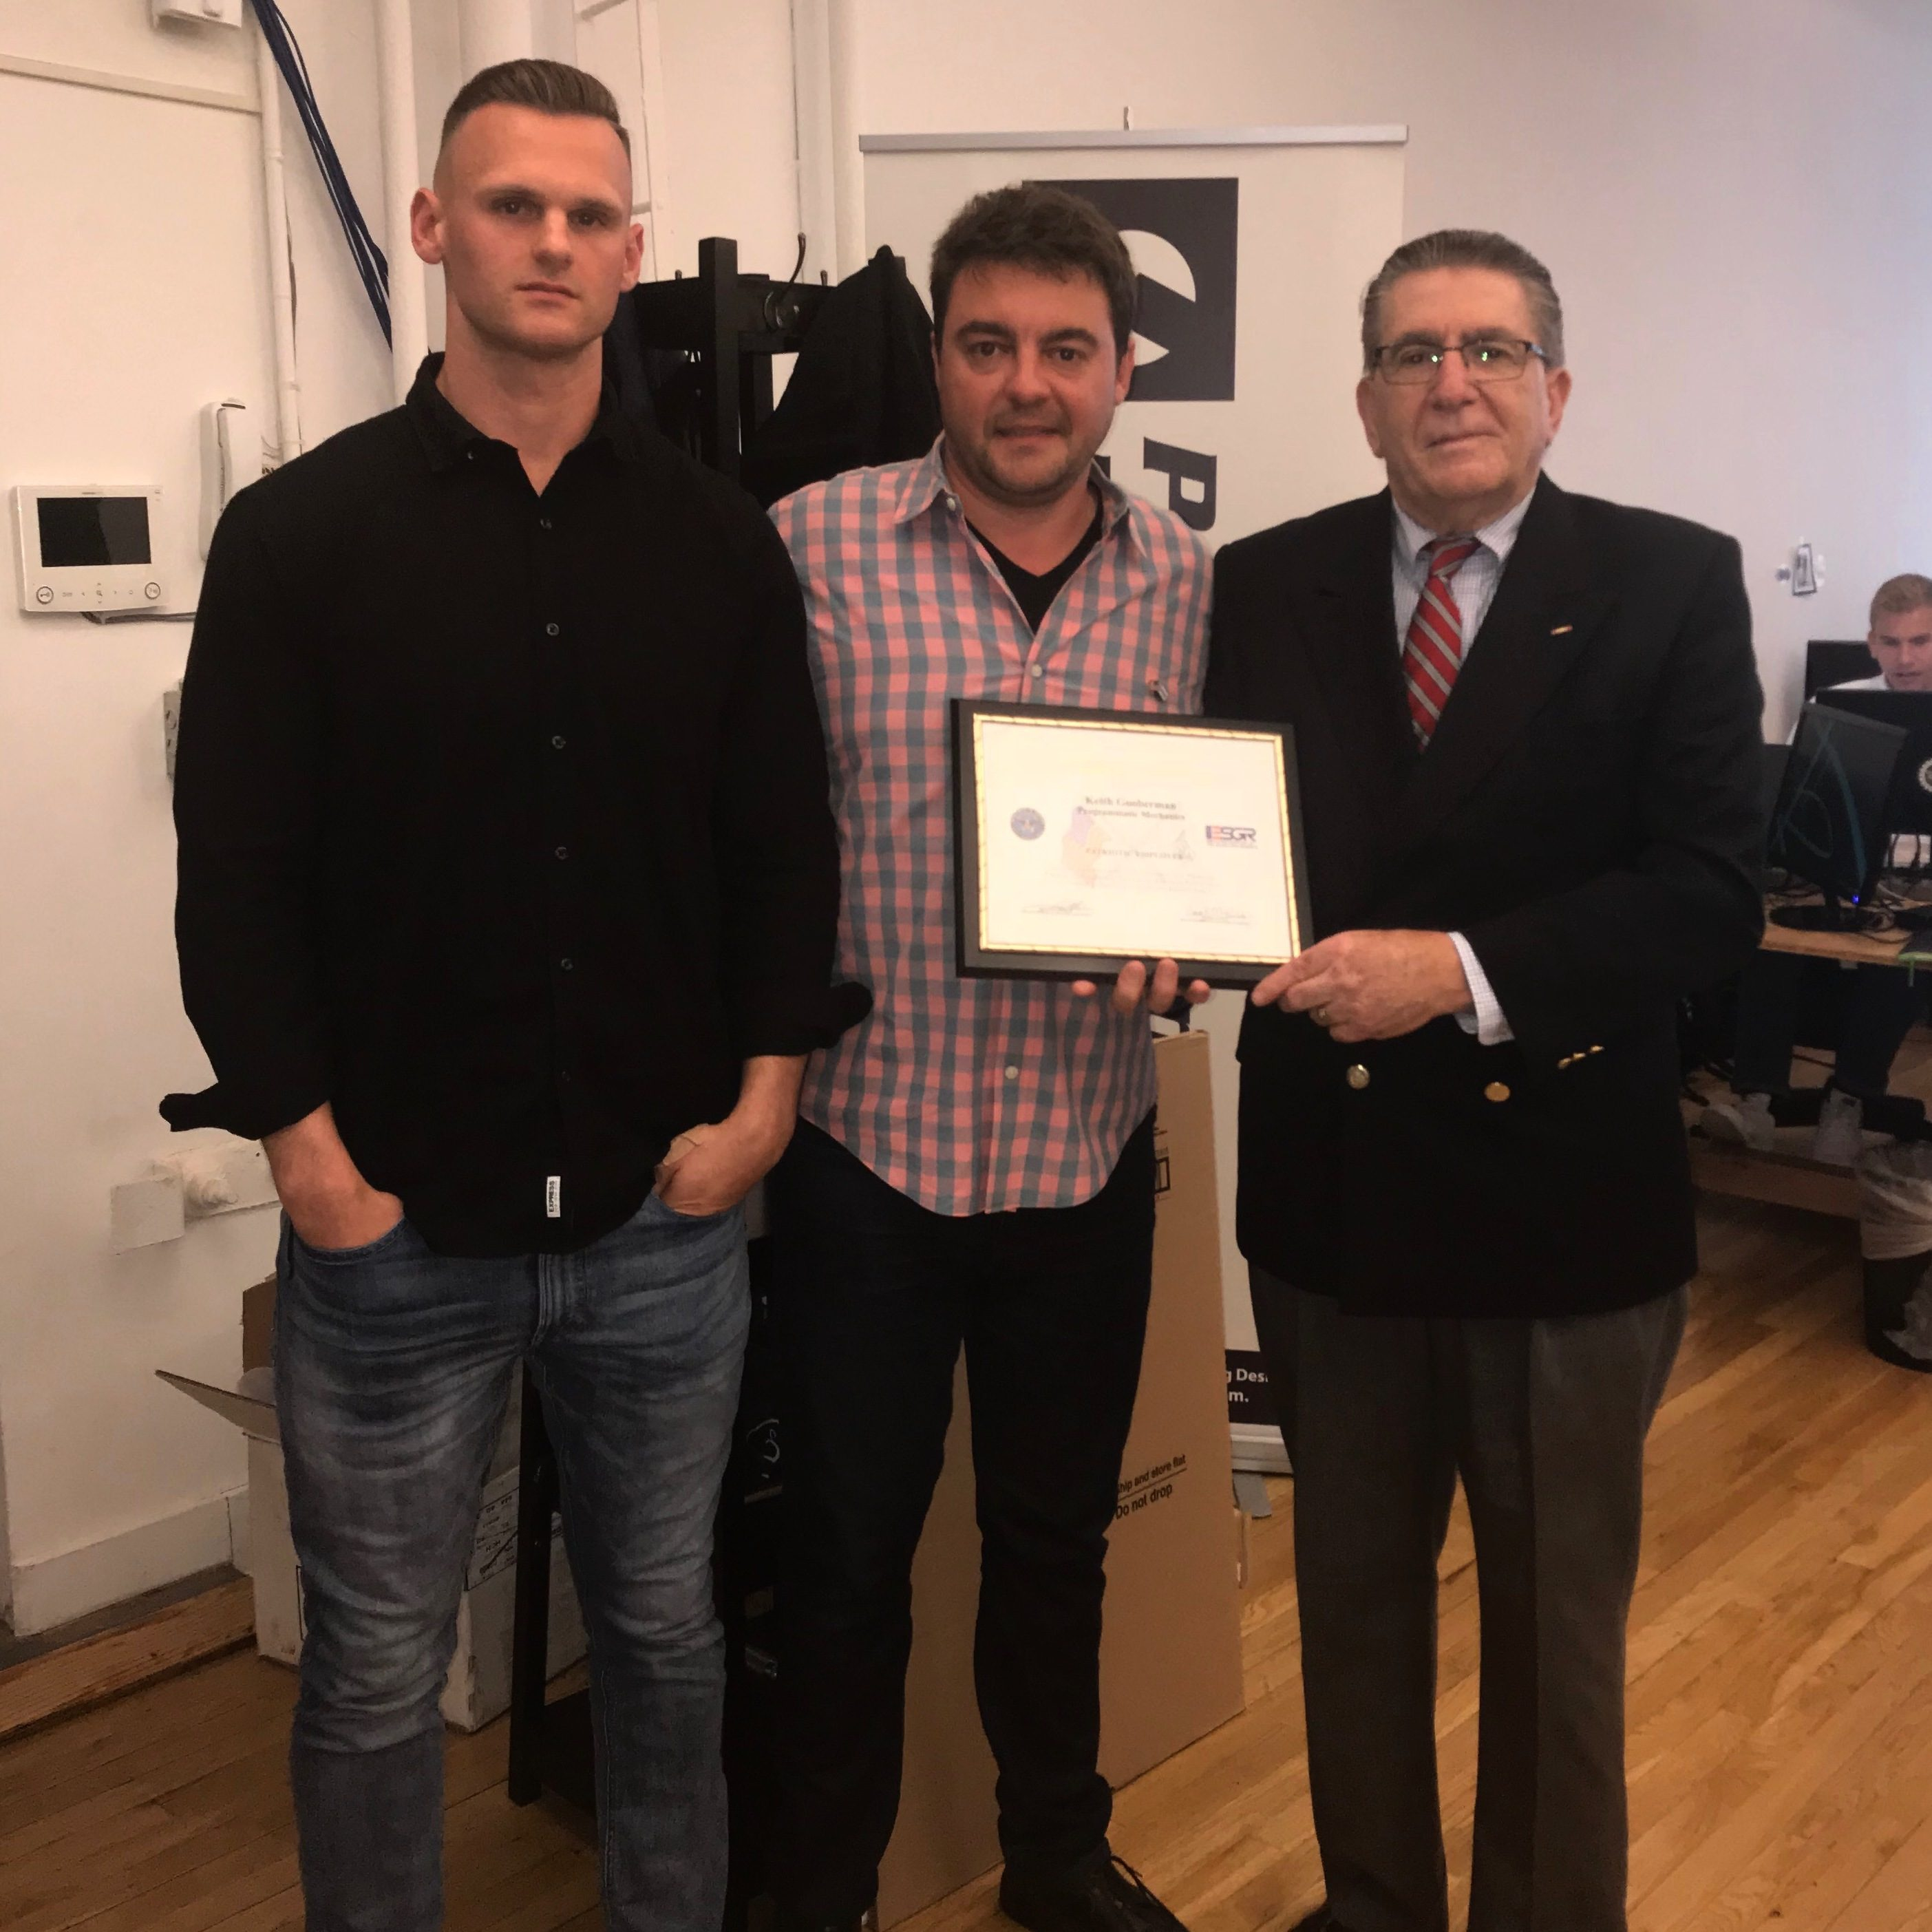 PRESS RELEASE – ProgMechs Receives Patriot Award